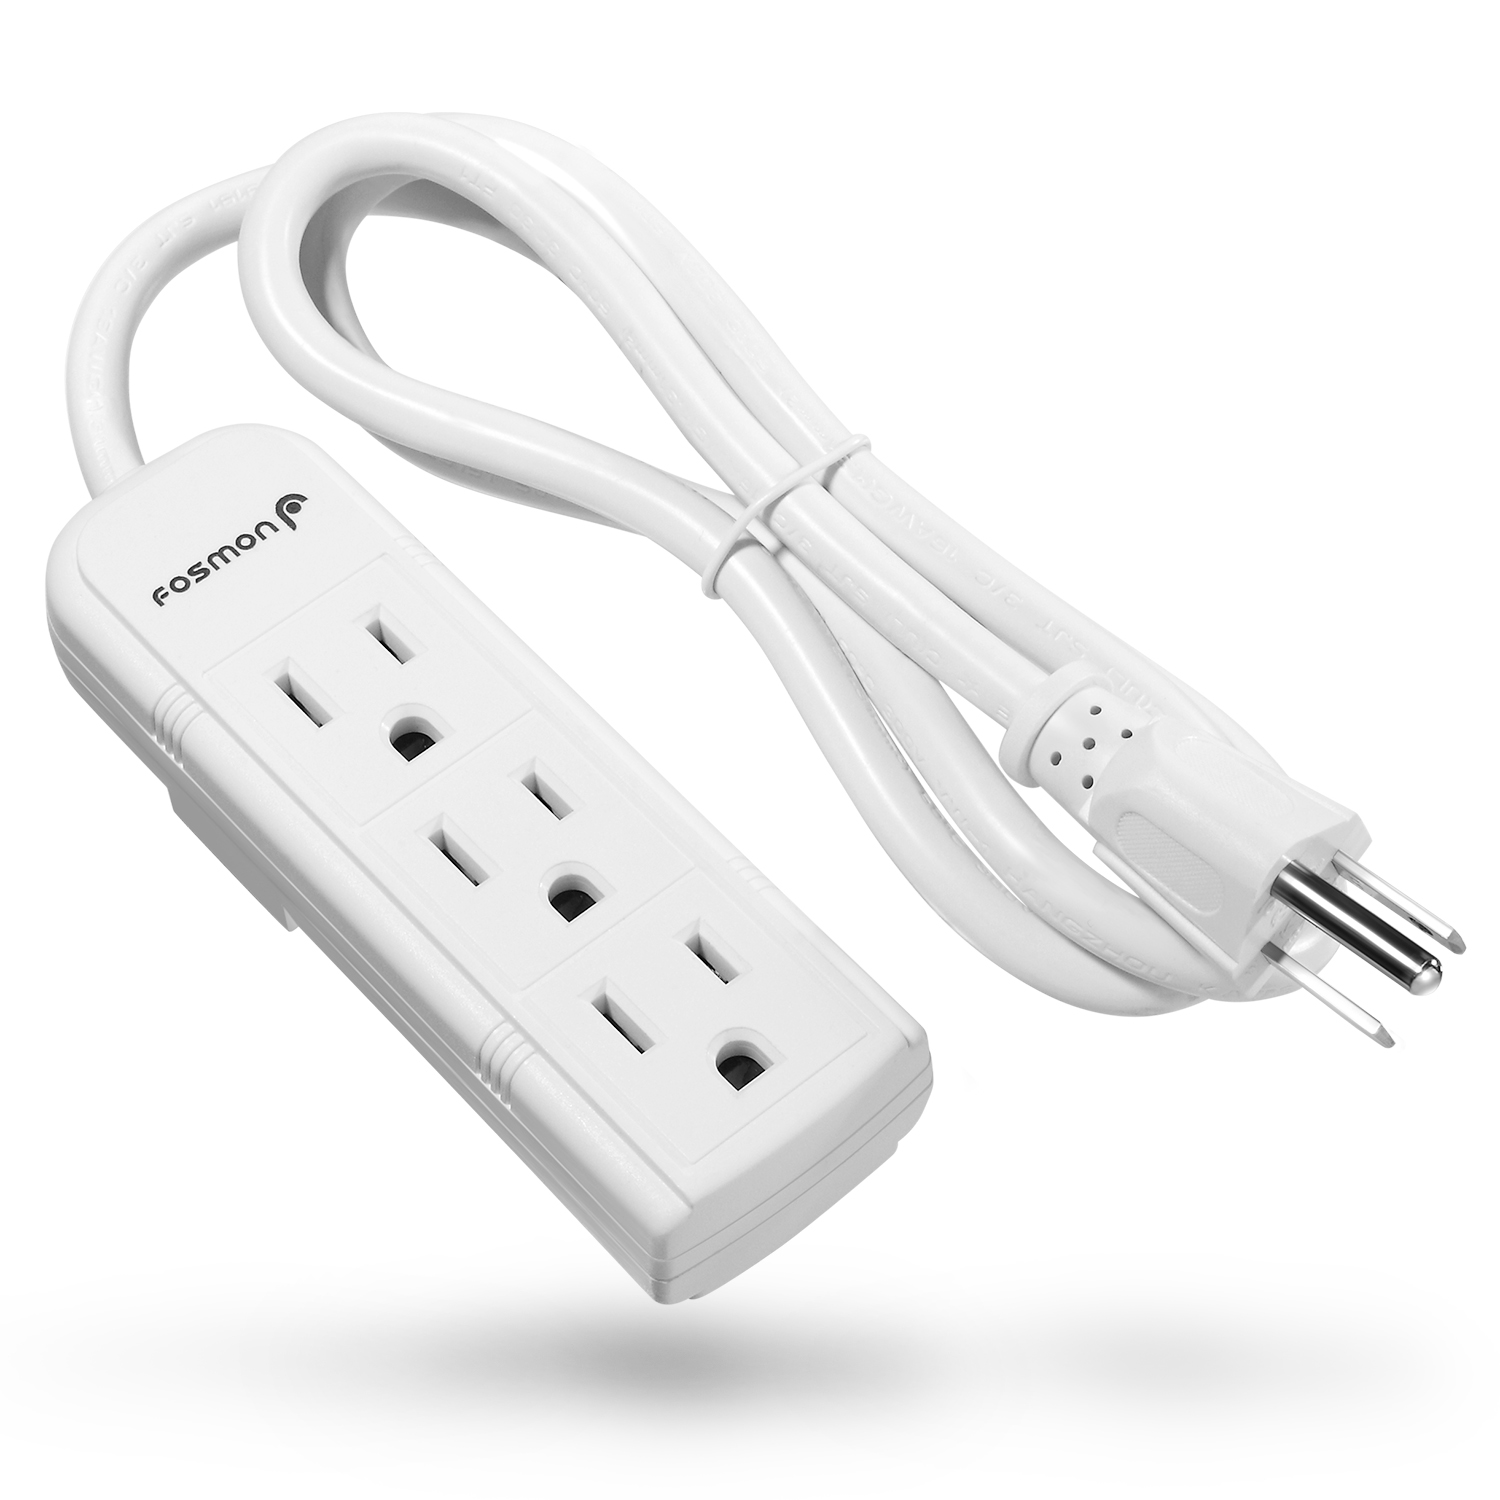 Fosmon 3 Outlet Power Strip Heavy Duty with 3FT Extension Cord, 3 Prong Grounded AC Plug, UL Listed (White)